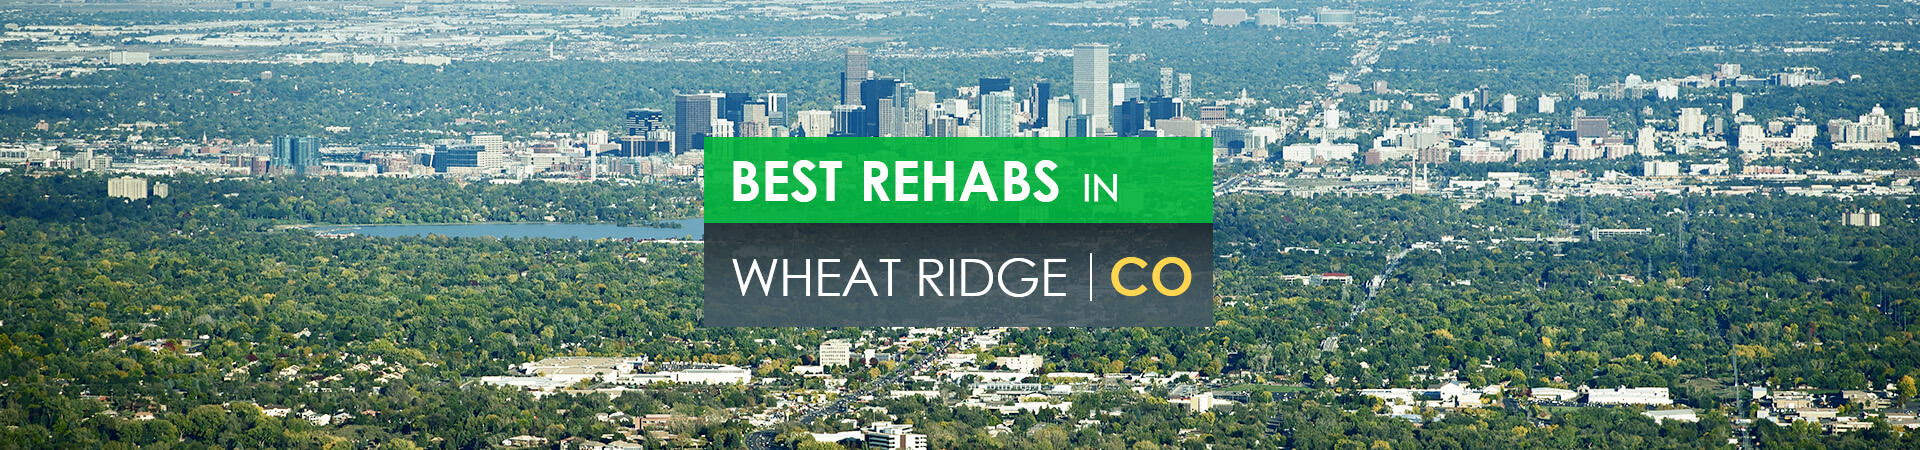 Best rehabs in Wheat Ridge, CO